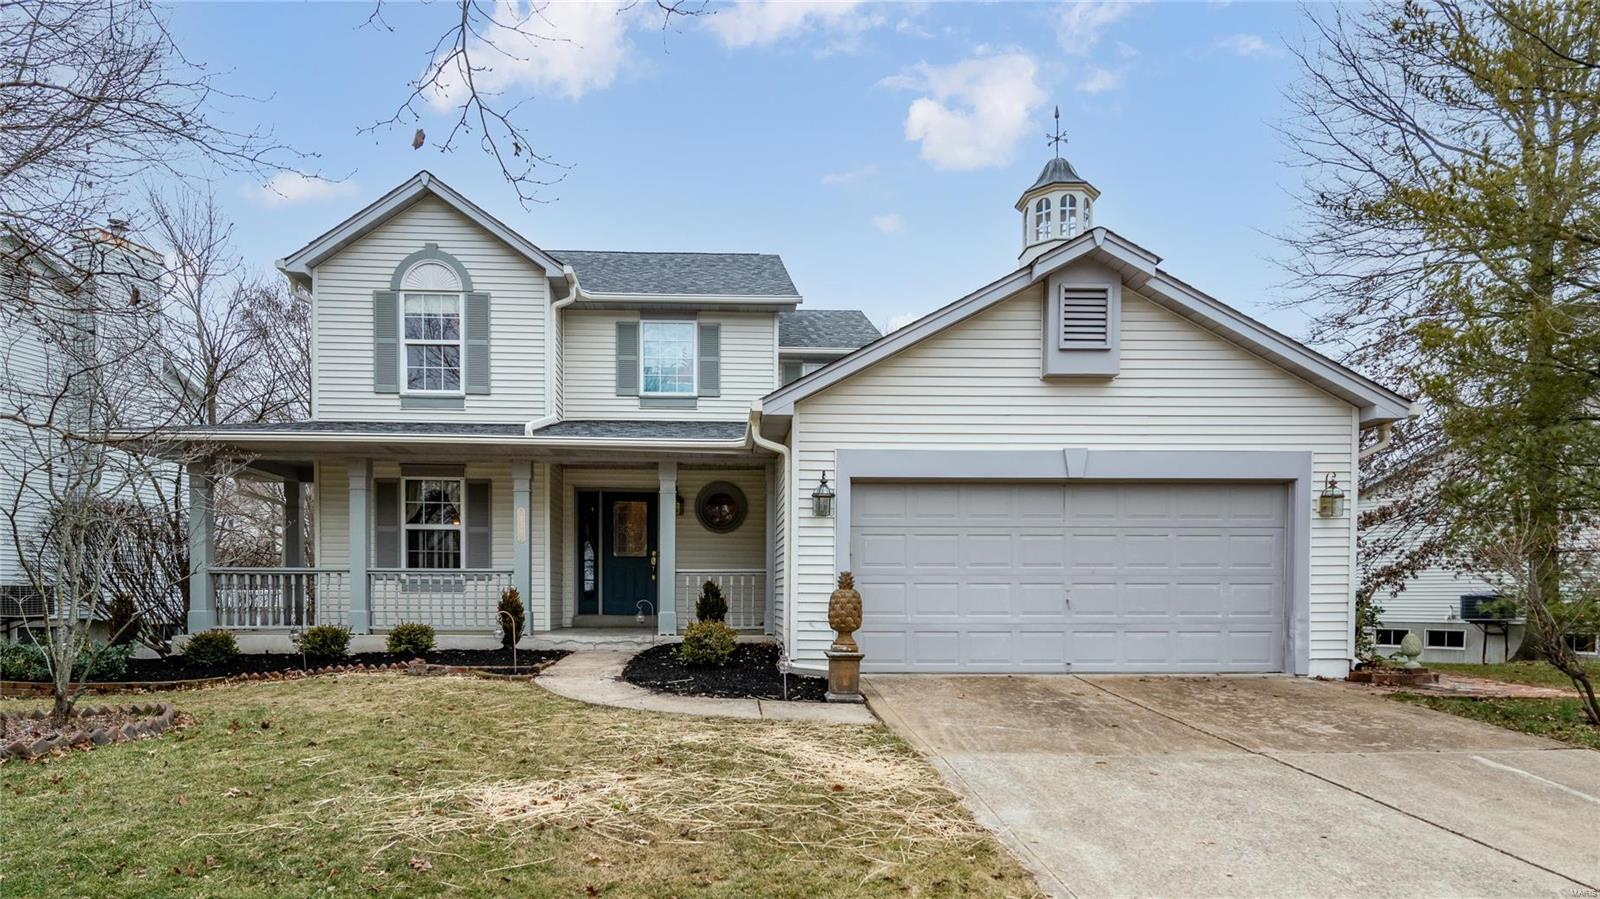 430 Nantucket Pointe Property Photo - Grover, MO real estate listing